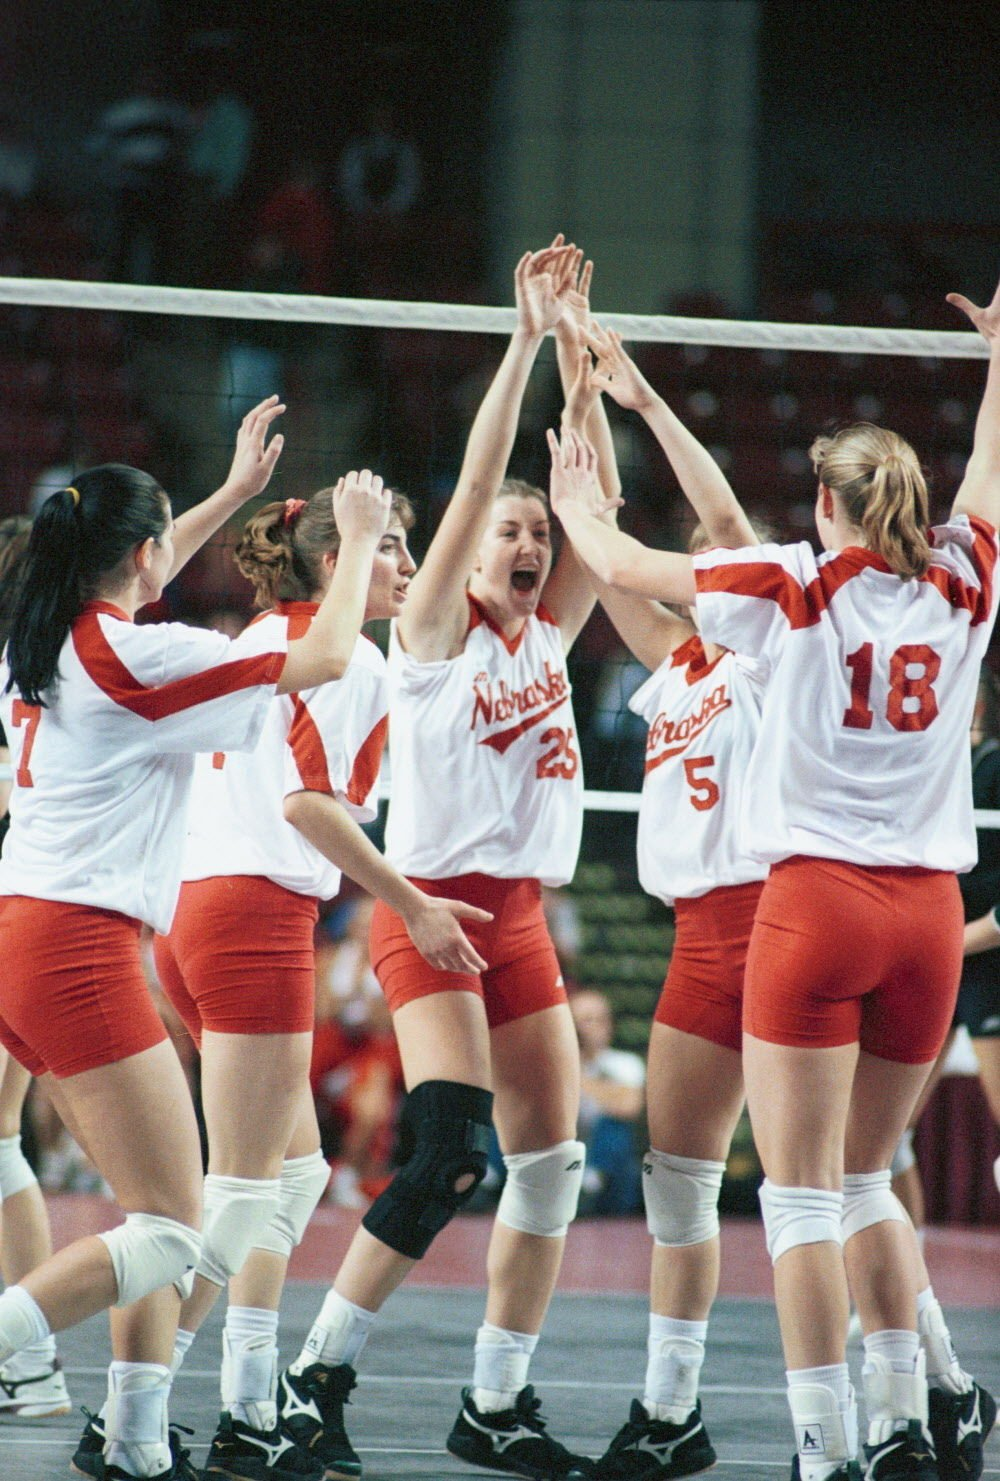 Volleyball Huskers First Ncaa Championship Team Returning To Lincoln Volleyball Journalstar Com